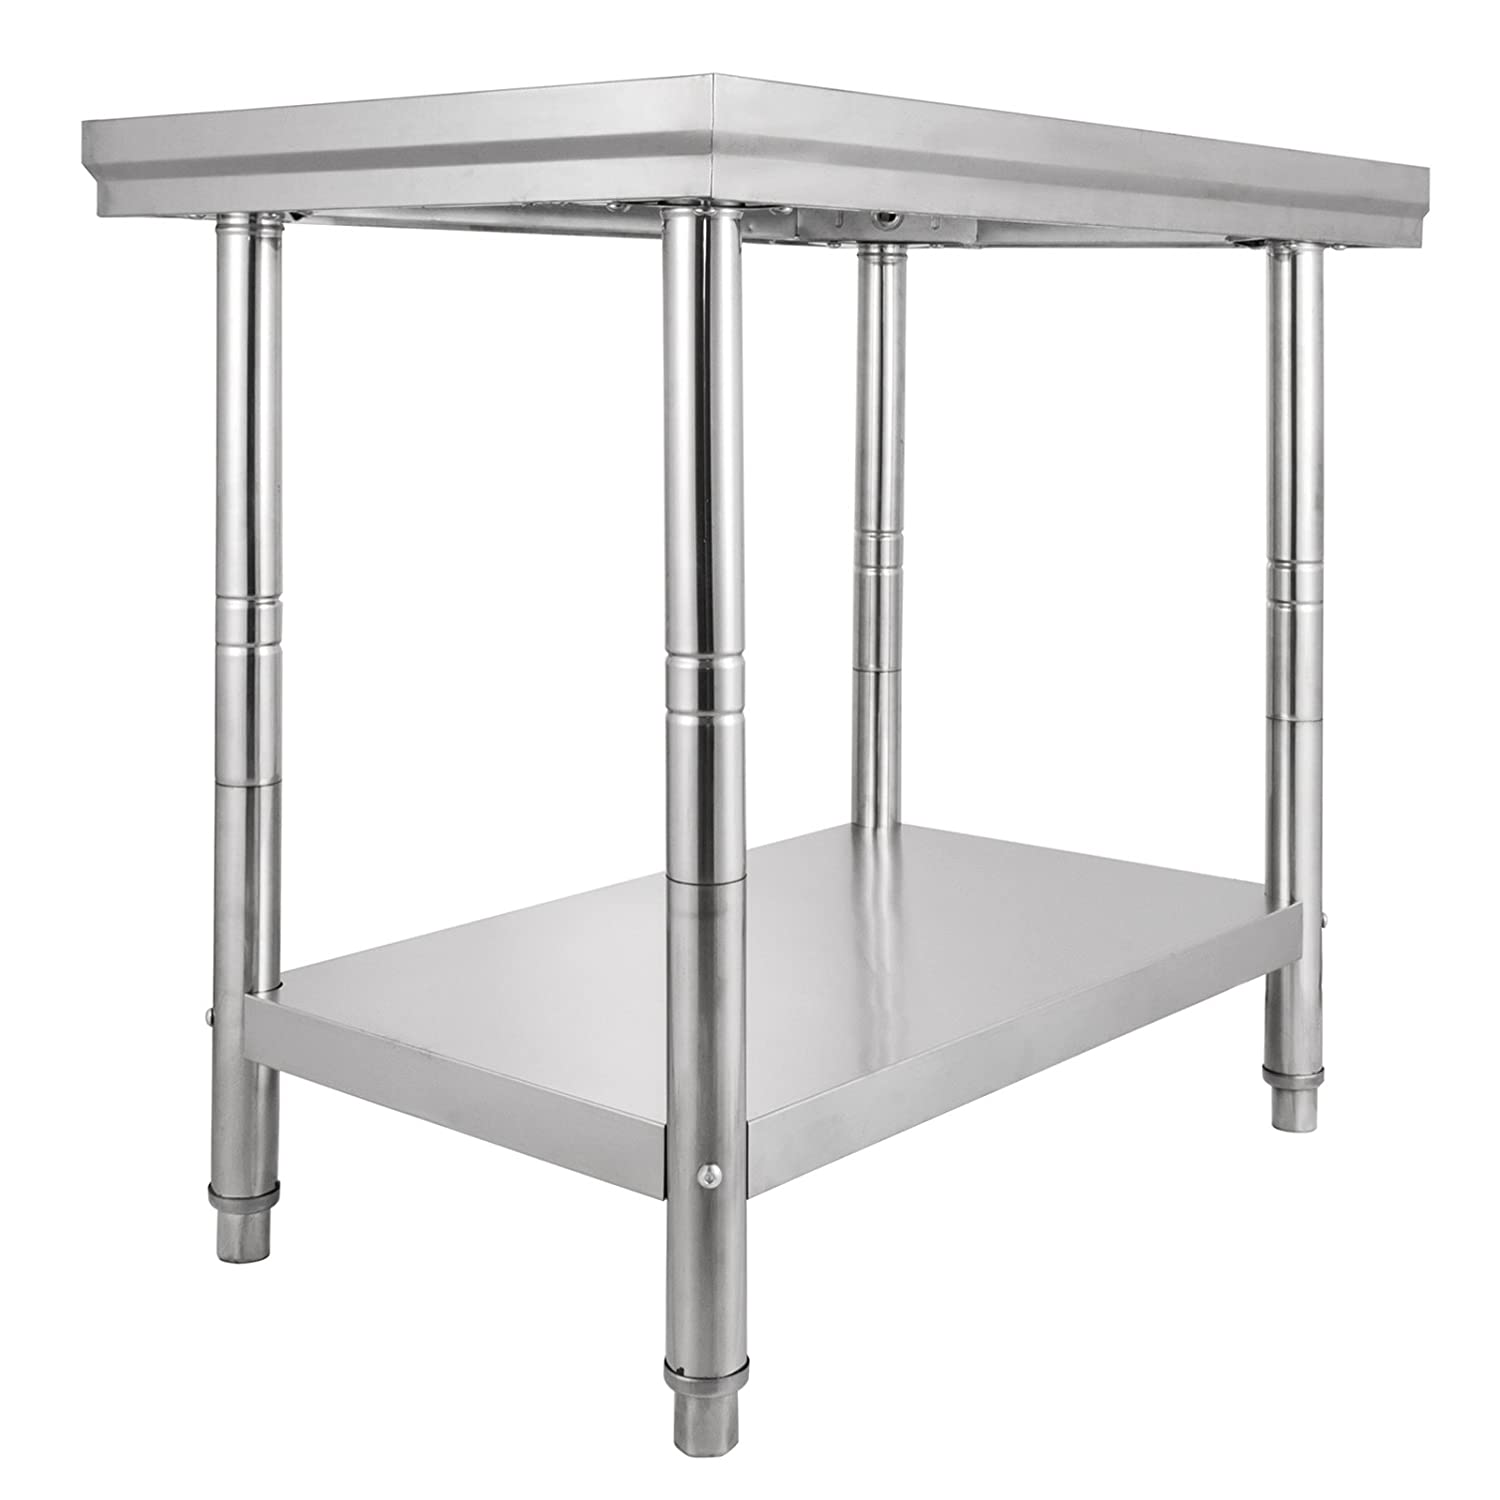 Hopopular Stainless Steel Work Table 2FT x 4FT Work Bench Prep Work Table for Commercial Kitchen Restaurant (2FT X 3FT)